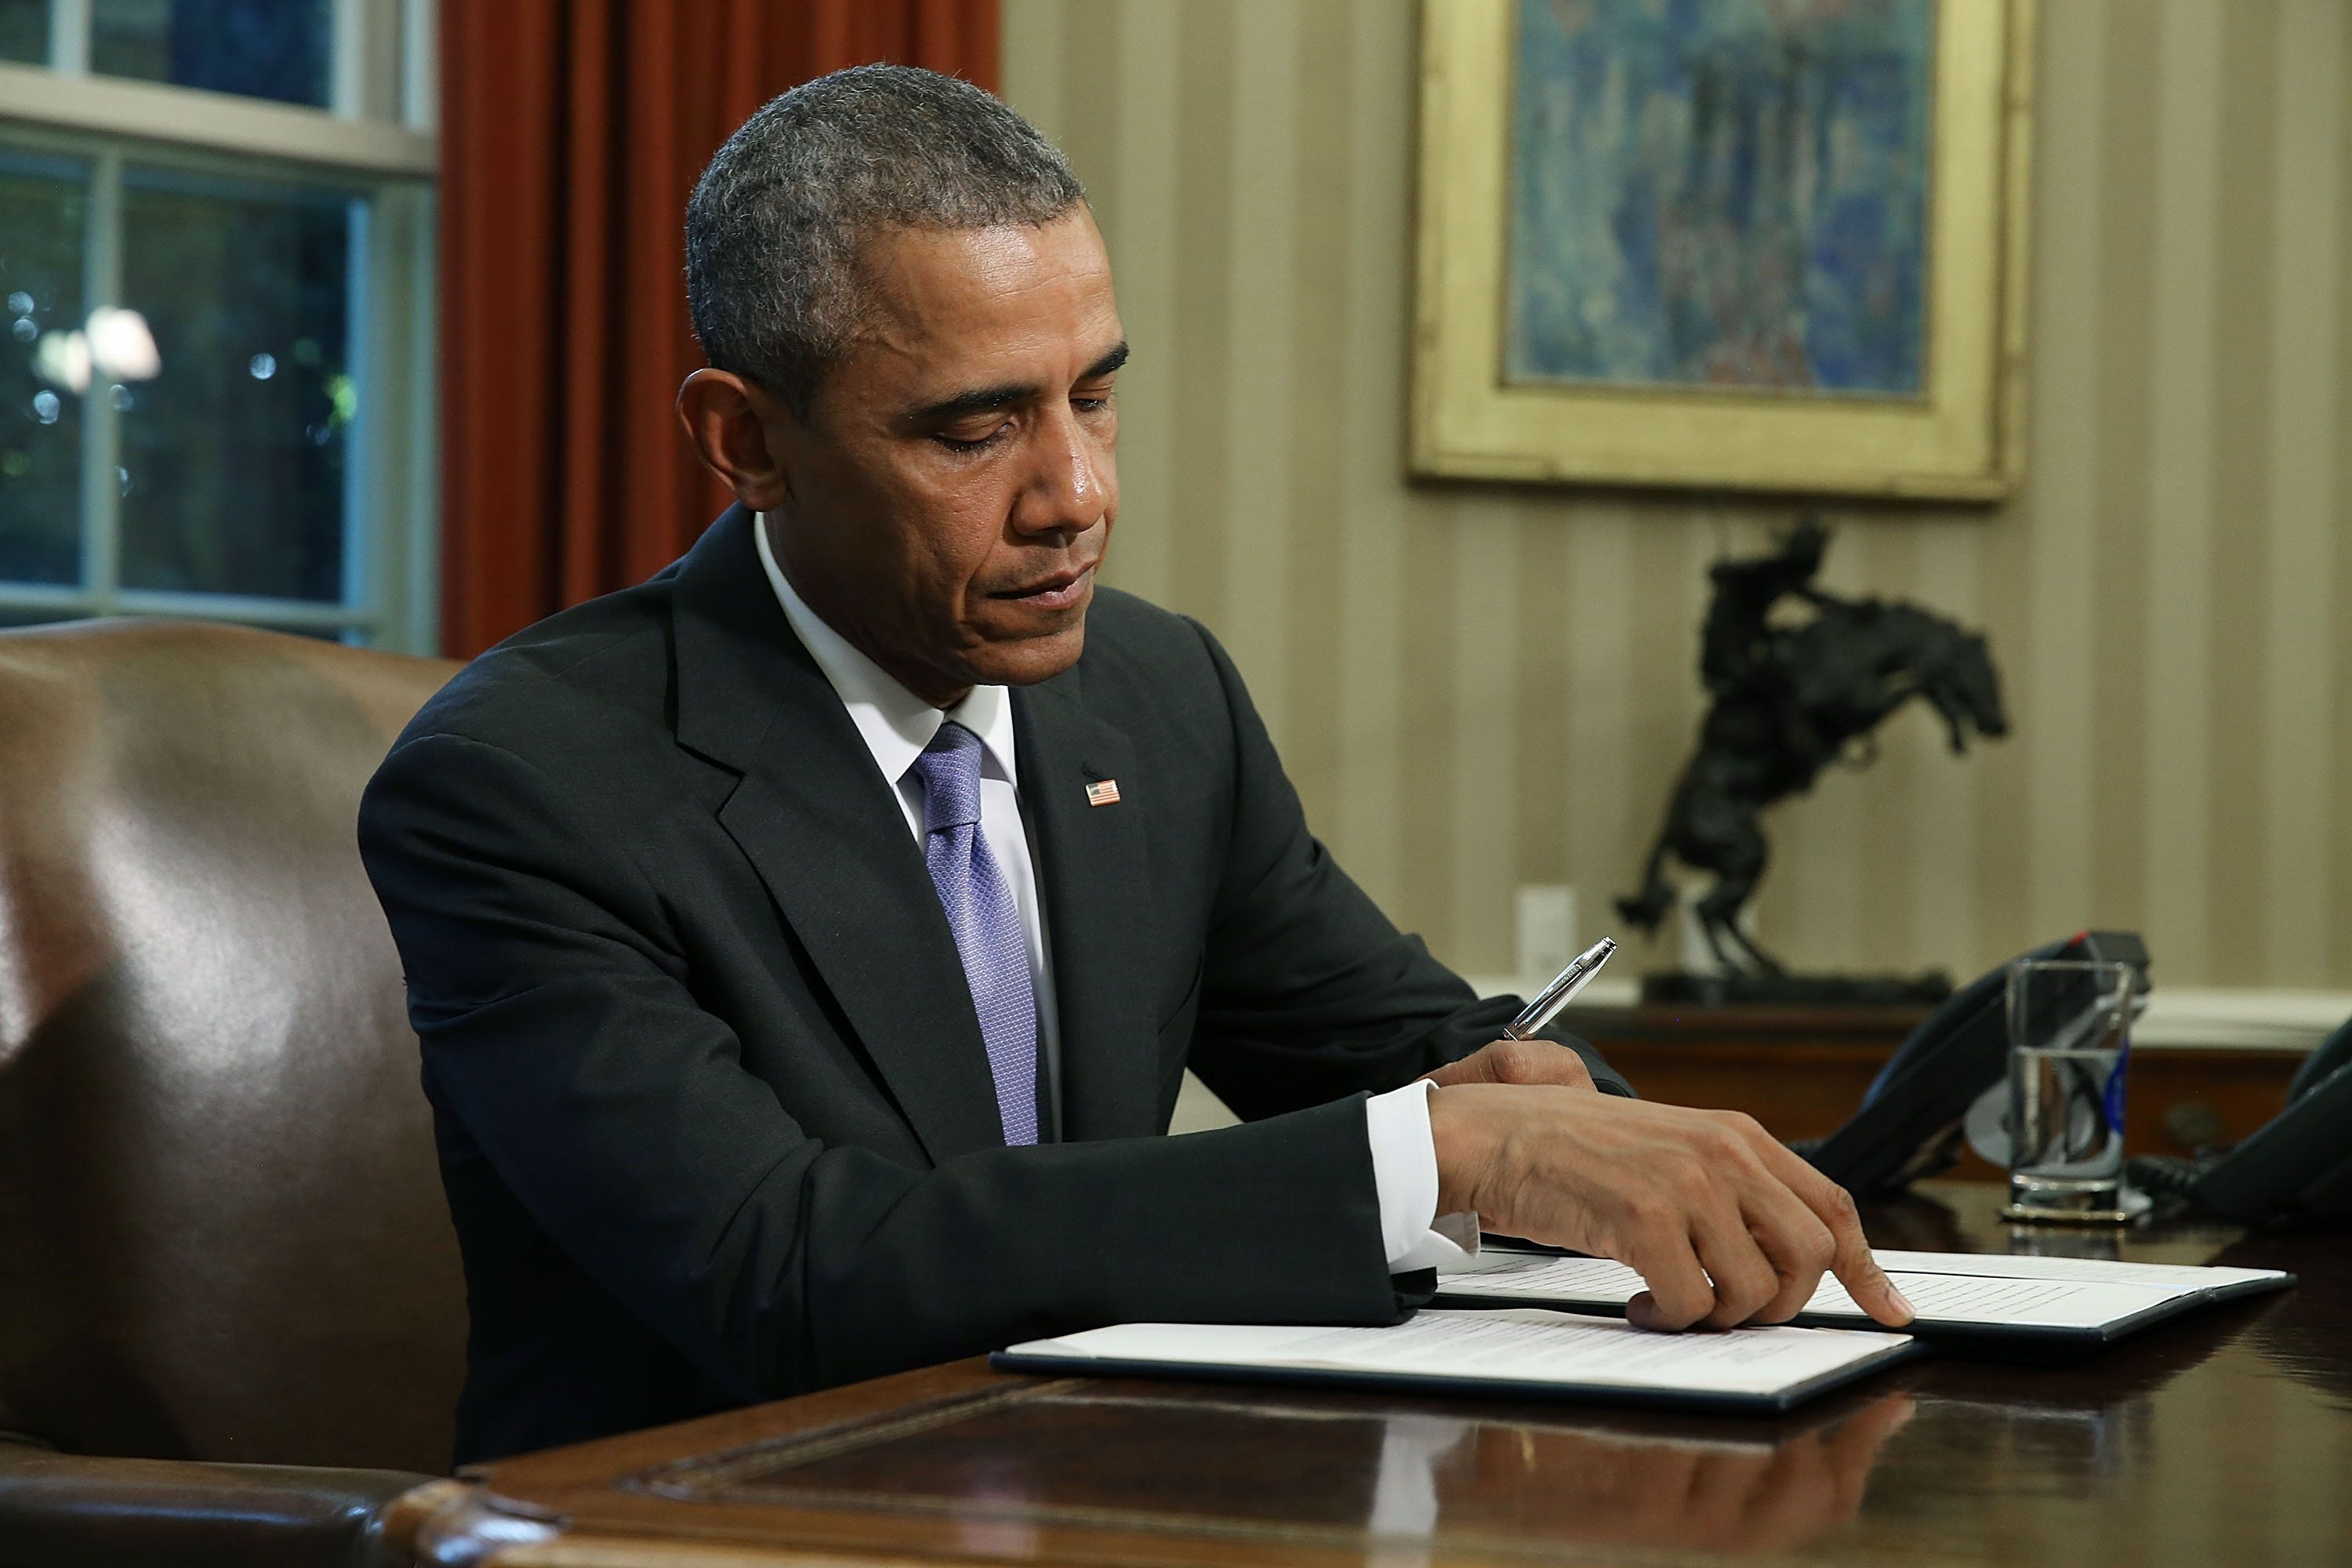 WASHINGTON, DC - OCTOBER 22: U.S. President Barack Obama signs a veto of ÊH.R. 1735ÊNational Defense Authorization Act (NDAA) in the Oval Office October 22, 2015 in Washington, DC. President Obama and Congressional Democrats object to the measure because it uses some $90 billion meant for war spending to avoid automatic budget cuts to military programs.  (Photo by Mark Wilson/Getty Images)